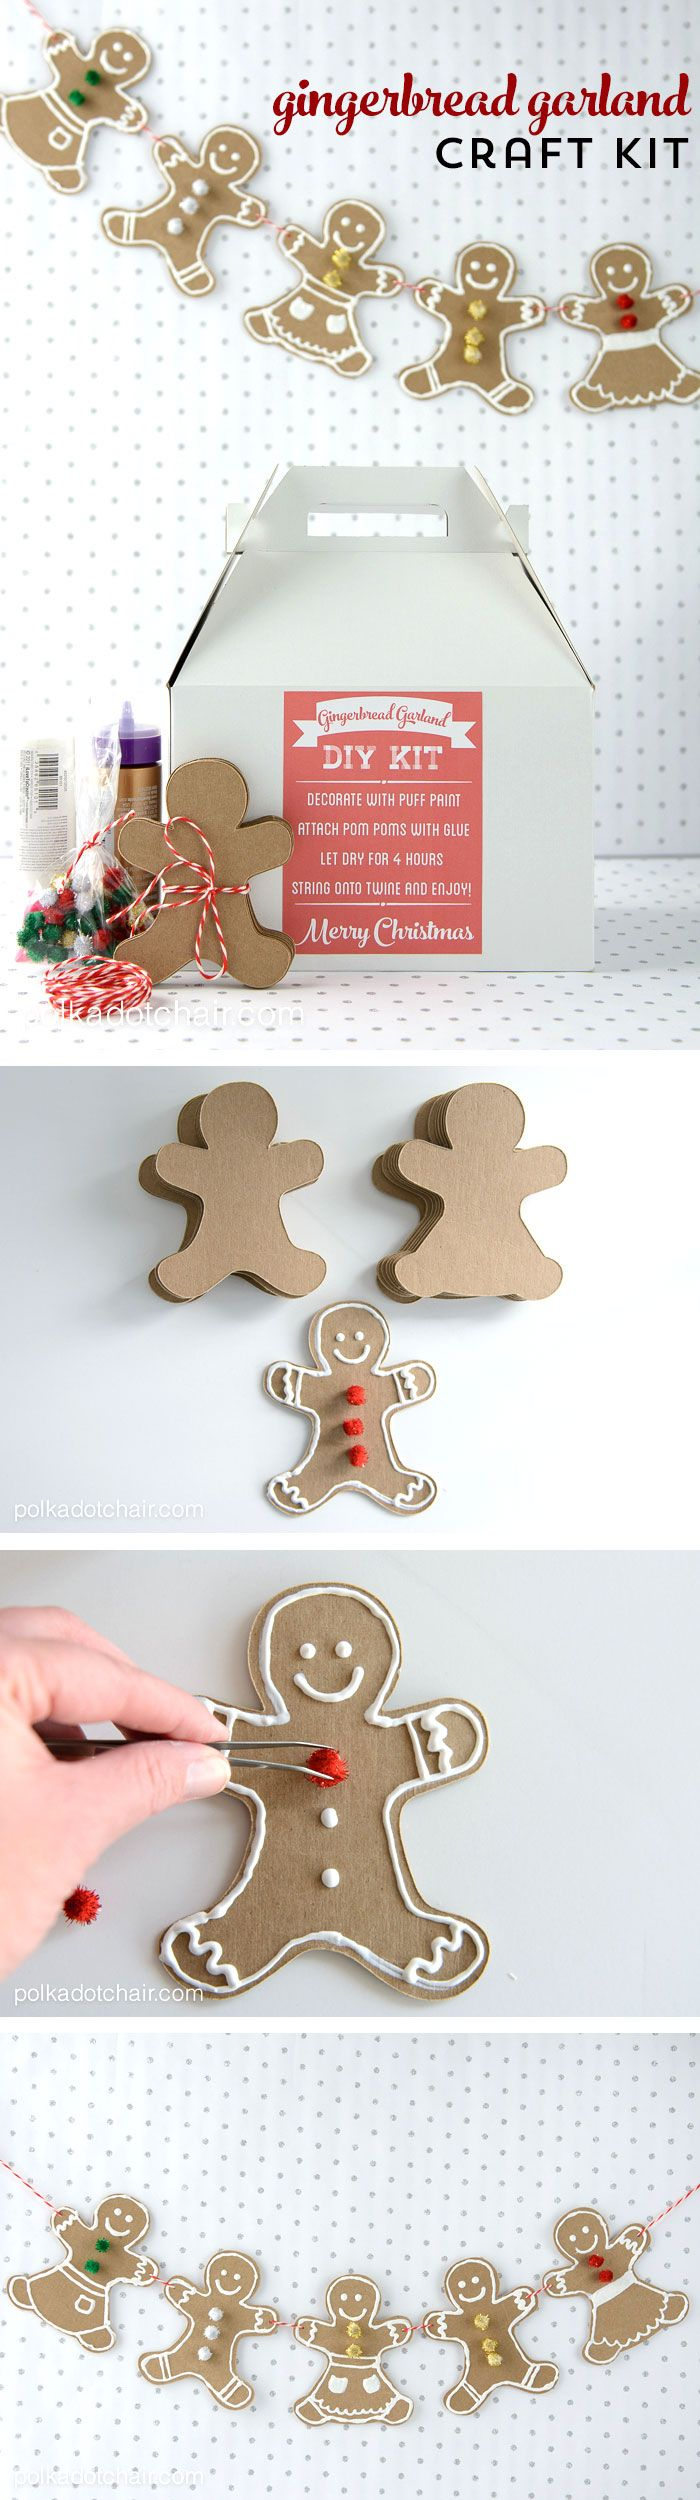 man craft ideas diy gingerbread craft kit for crafts 2373